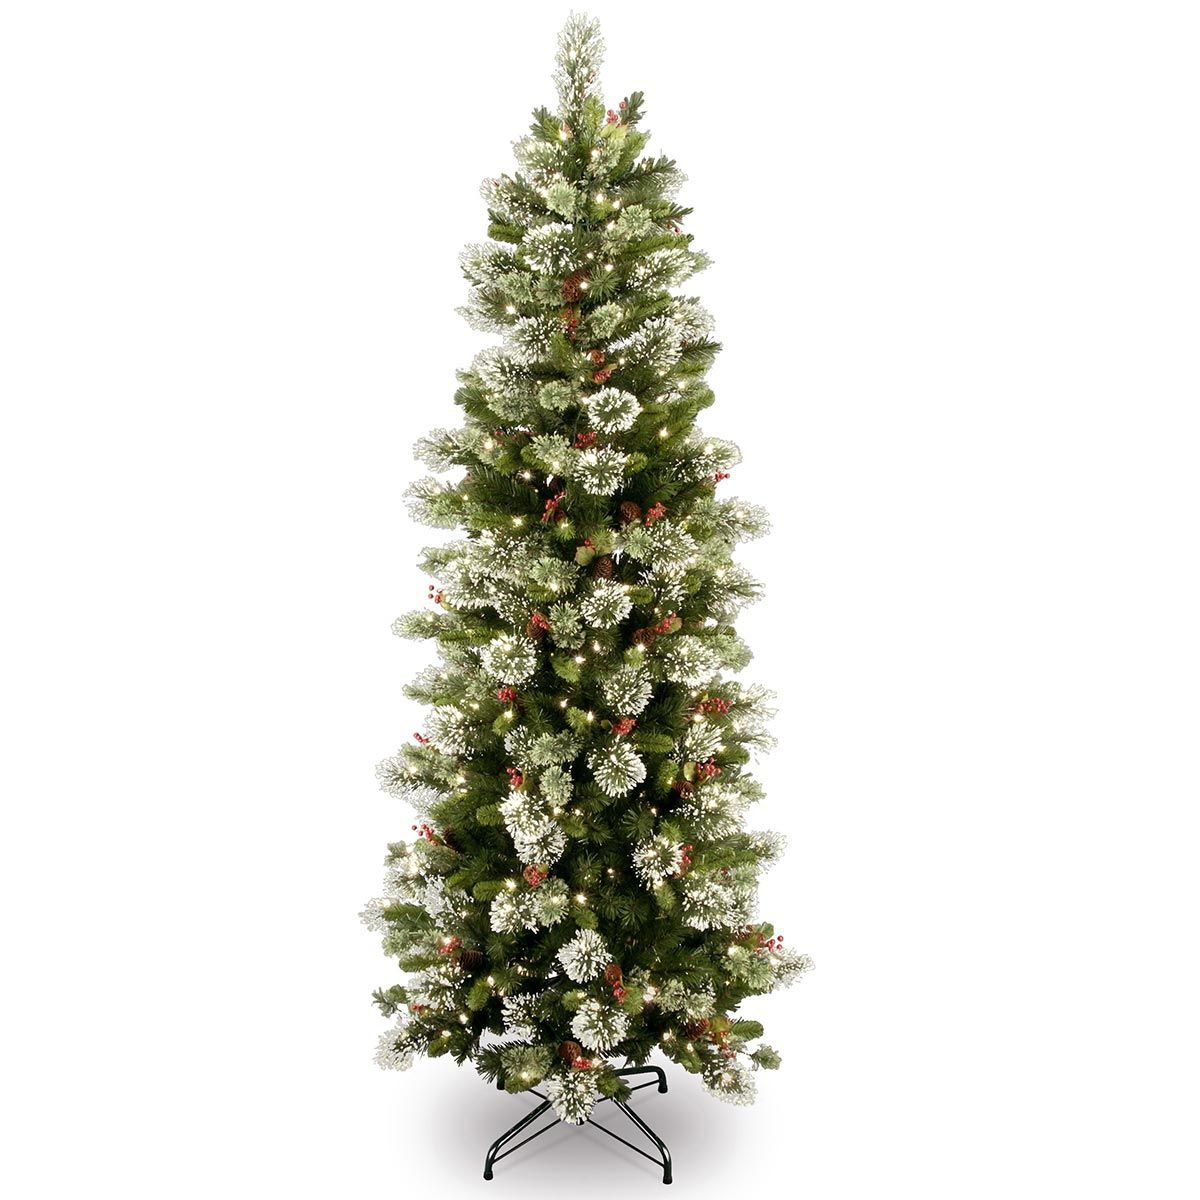 6ft Pre-lit Wintry Pine Slim Artificial Christmas Tree | Beautiful ...